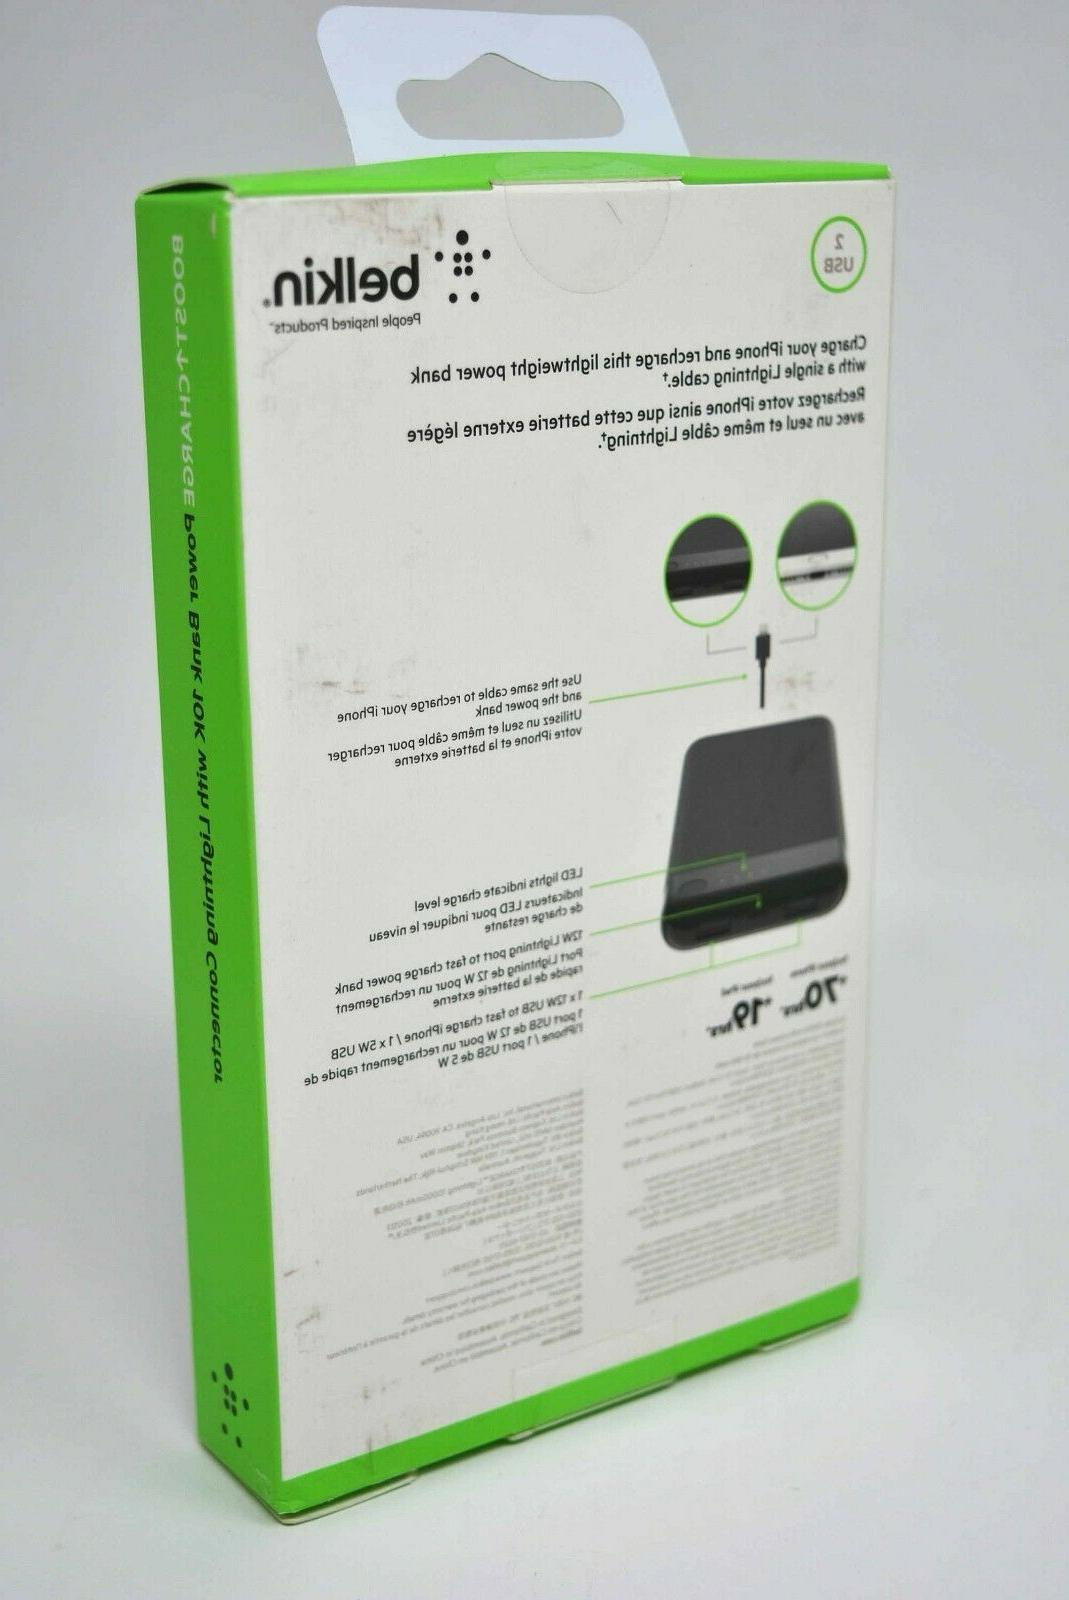 Belkin Boost Power Bank Battery 10000mAh Lightning for iPhones